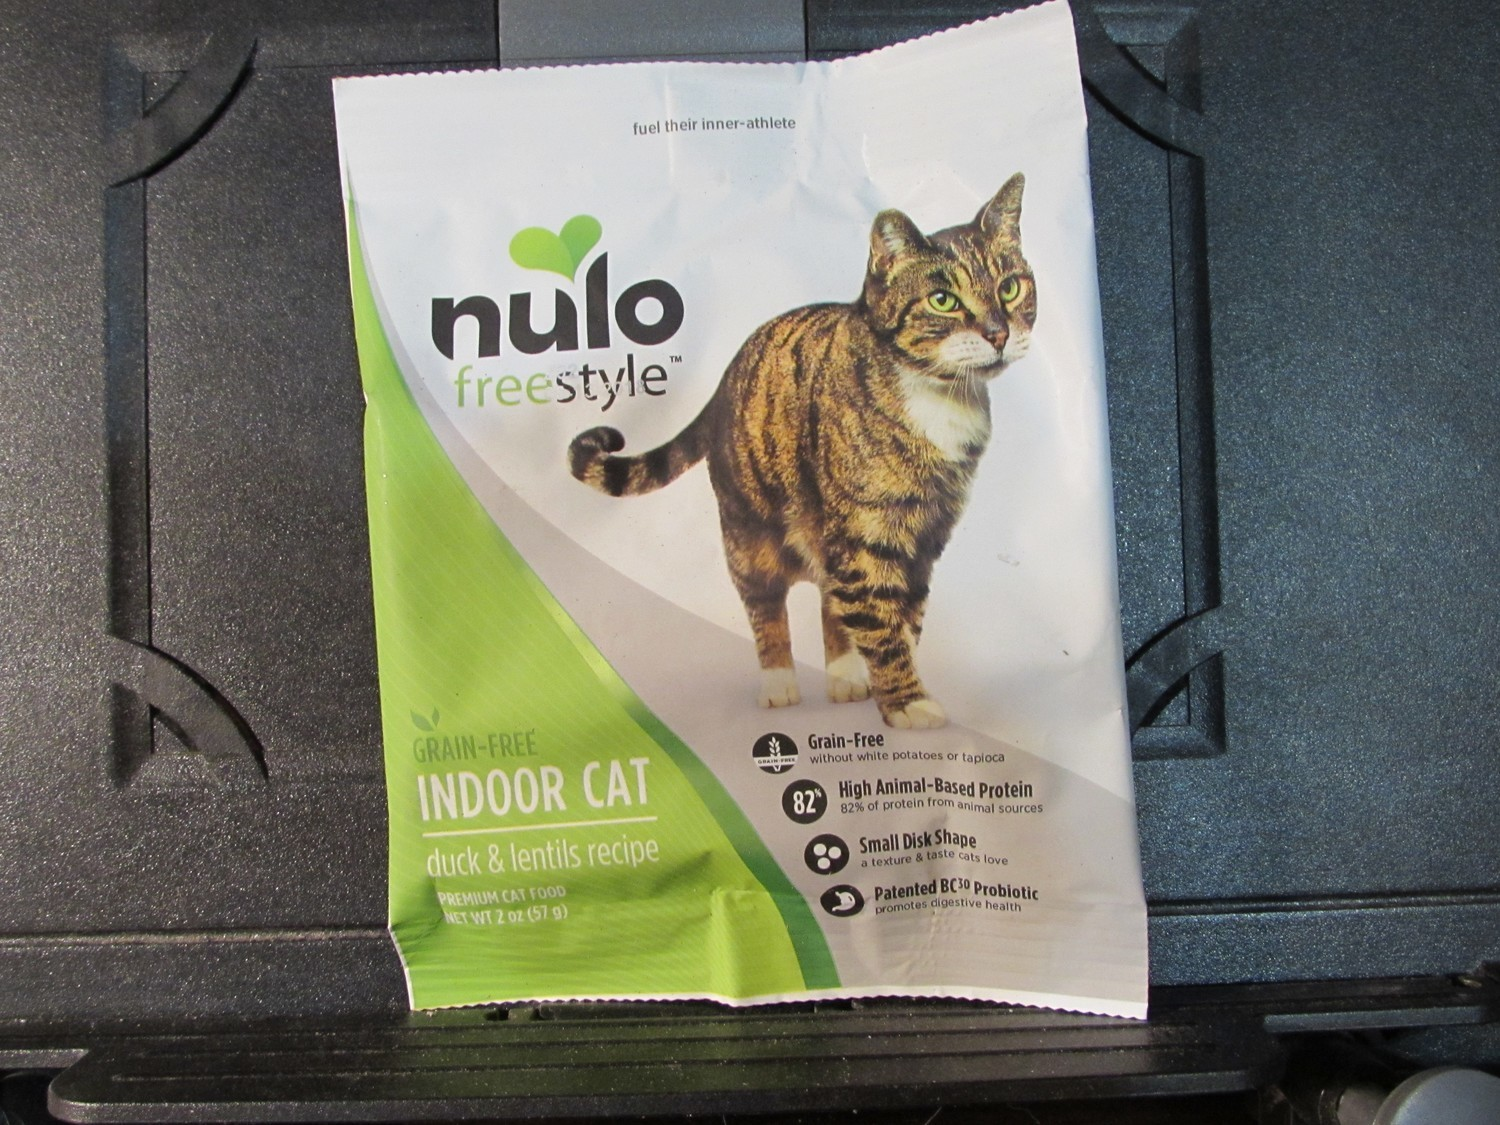 **SALE** Nulo Freestyle Cat GF Indoor Duck & Lentils 2 oz (11/18) (A.P3)